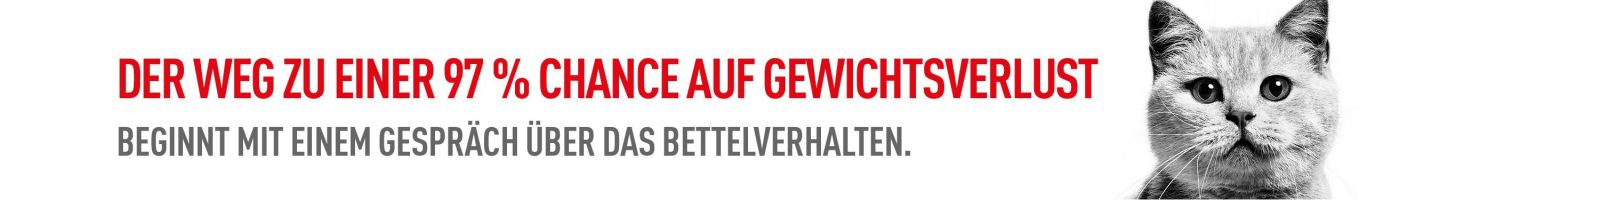 Bettelverhalten Banner_compressed